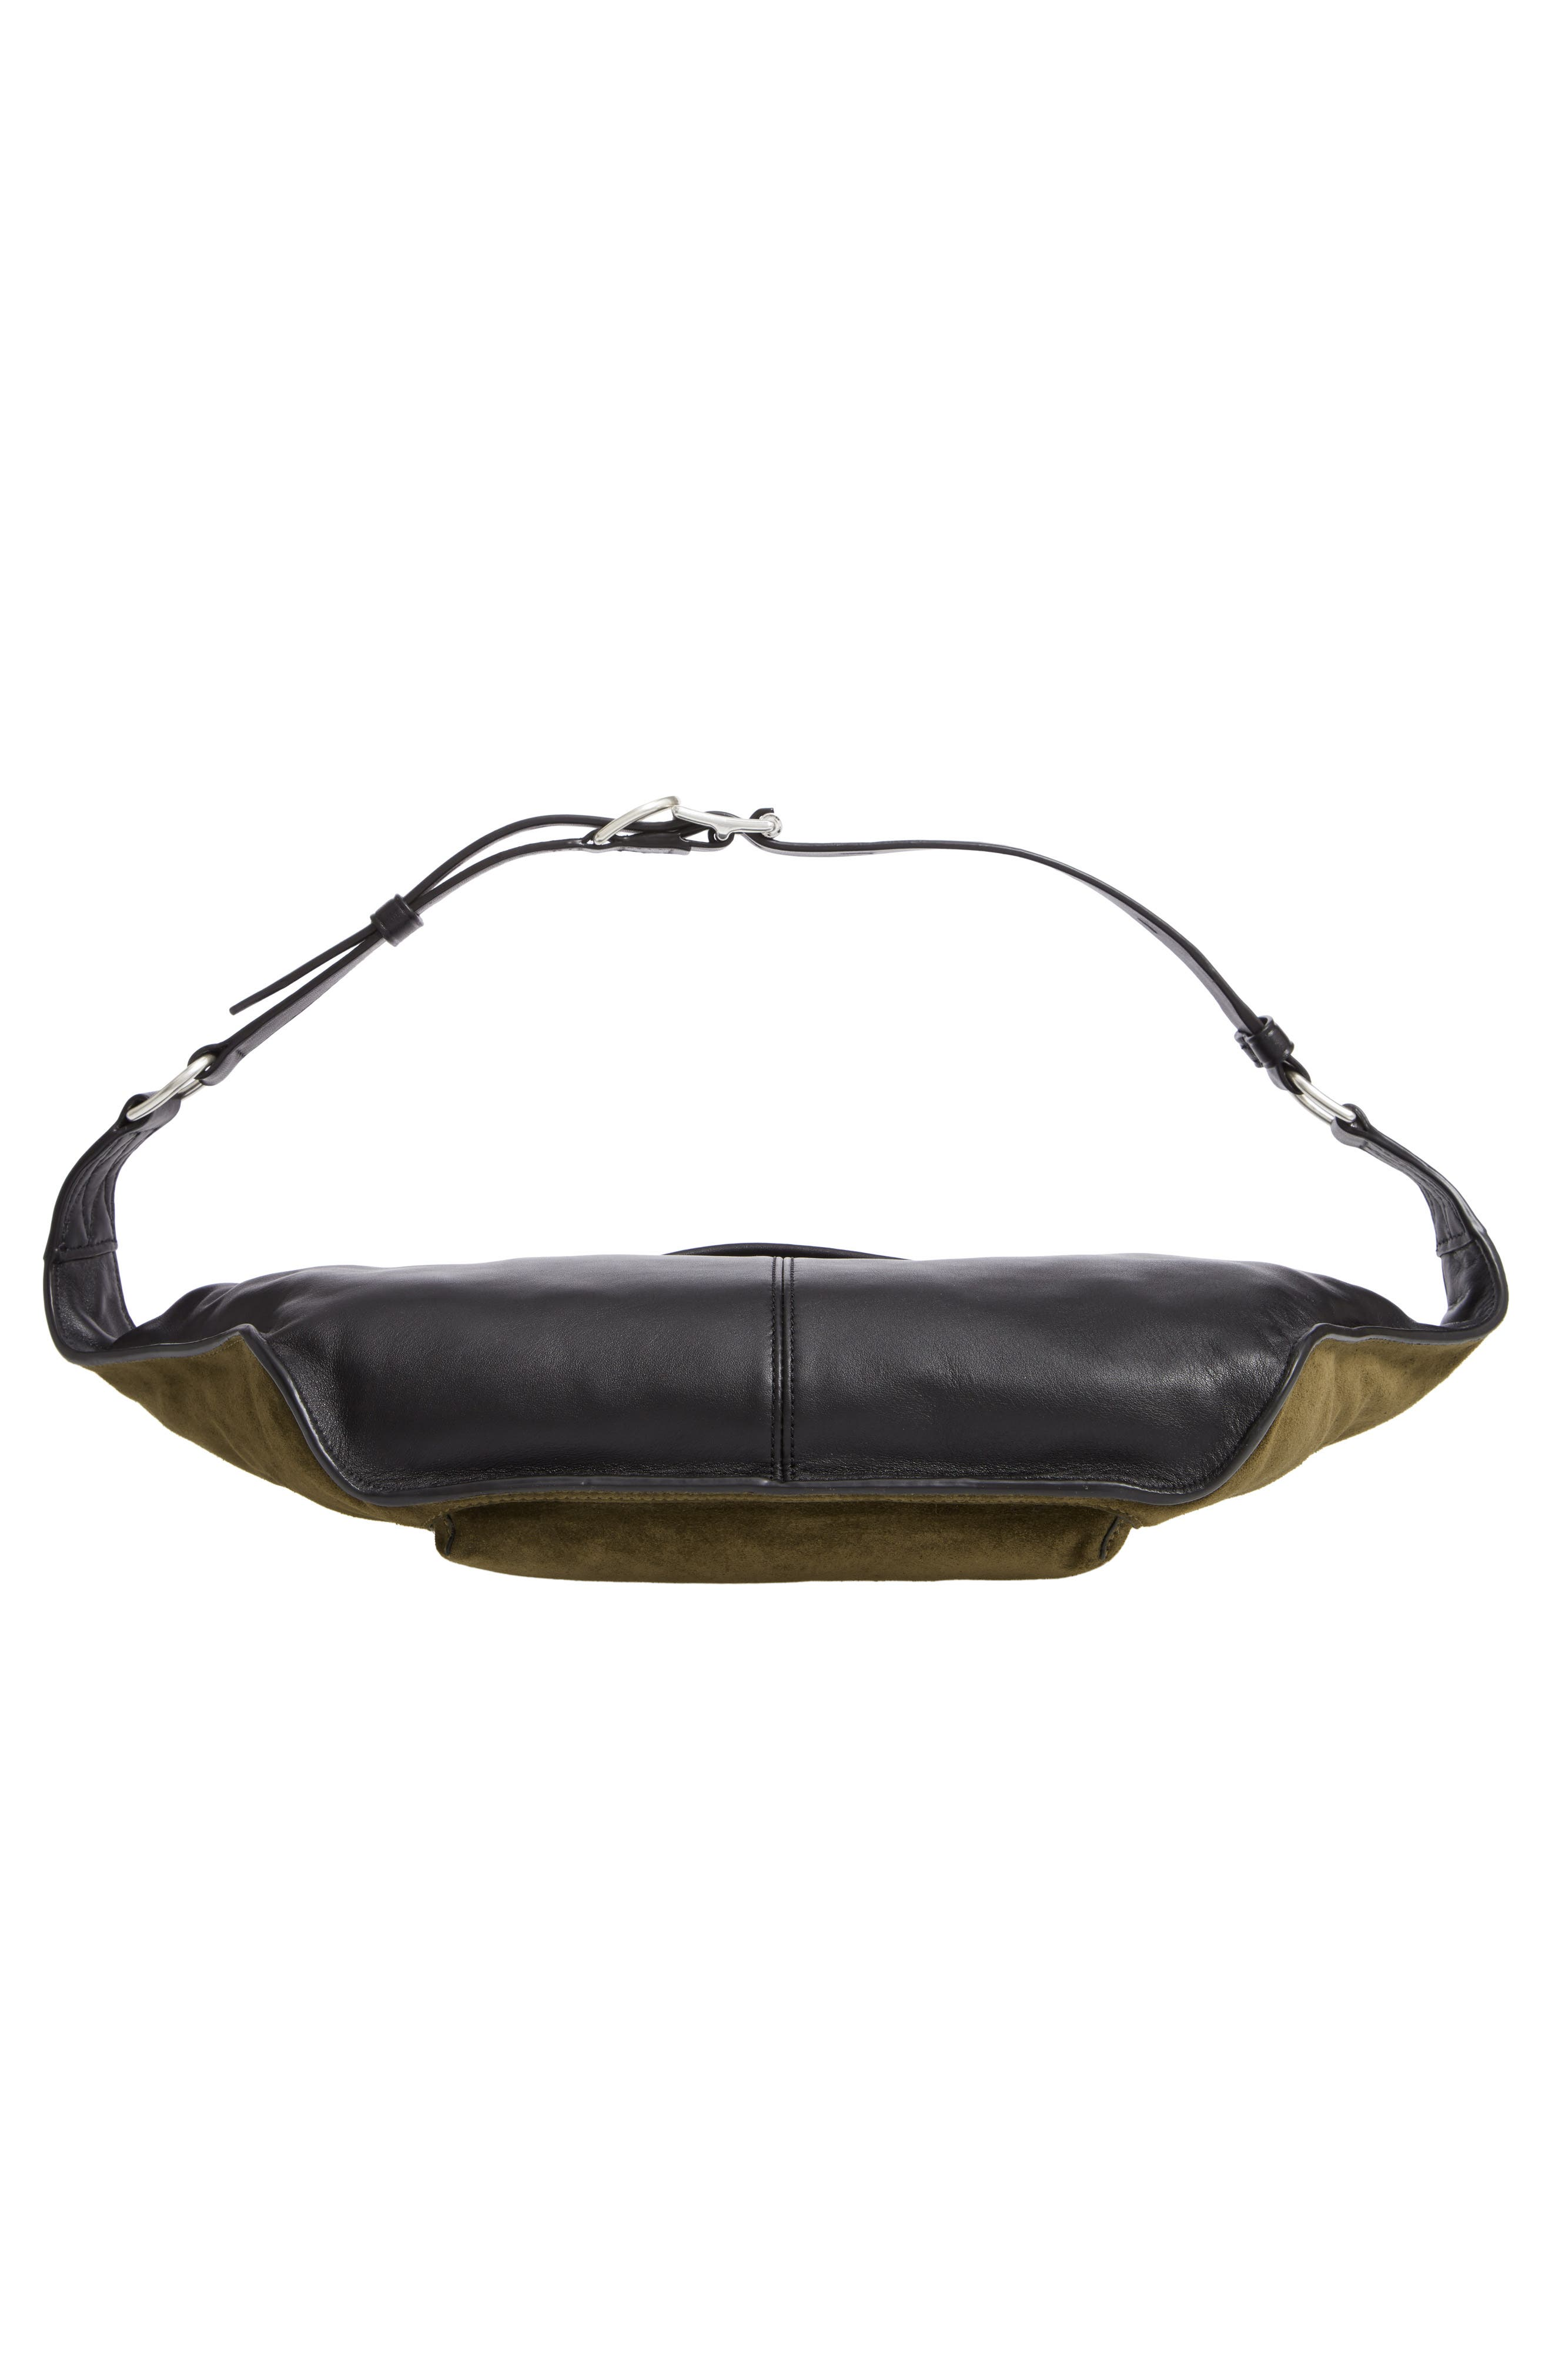 Large Elliot Genuine Calf Hair Fanny Pack,                             Alternate thumbnail 7, color,                             OLIVE SUEDE